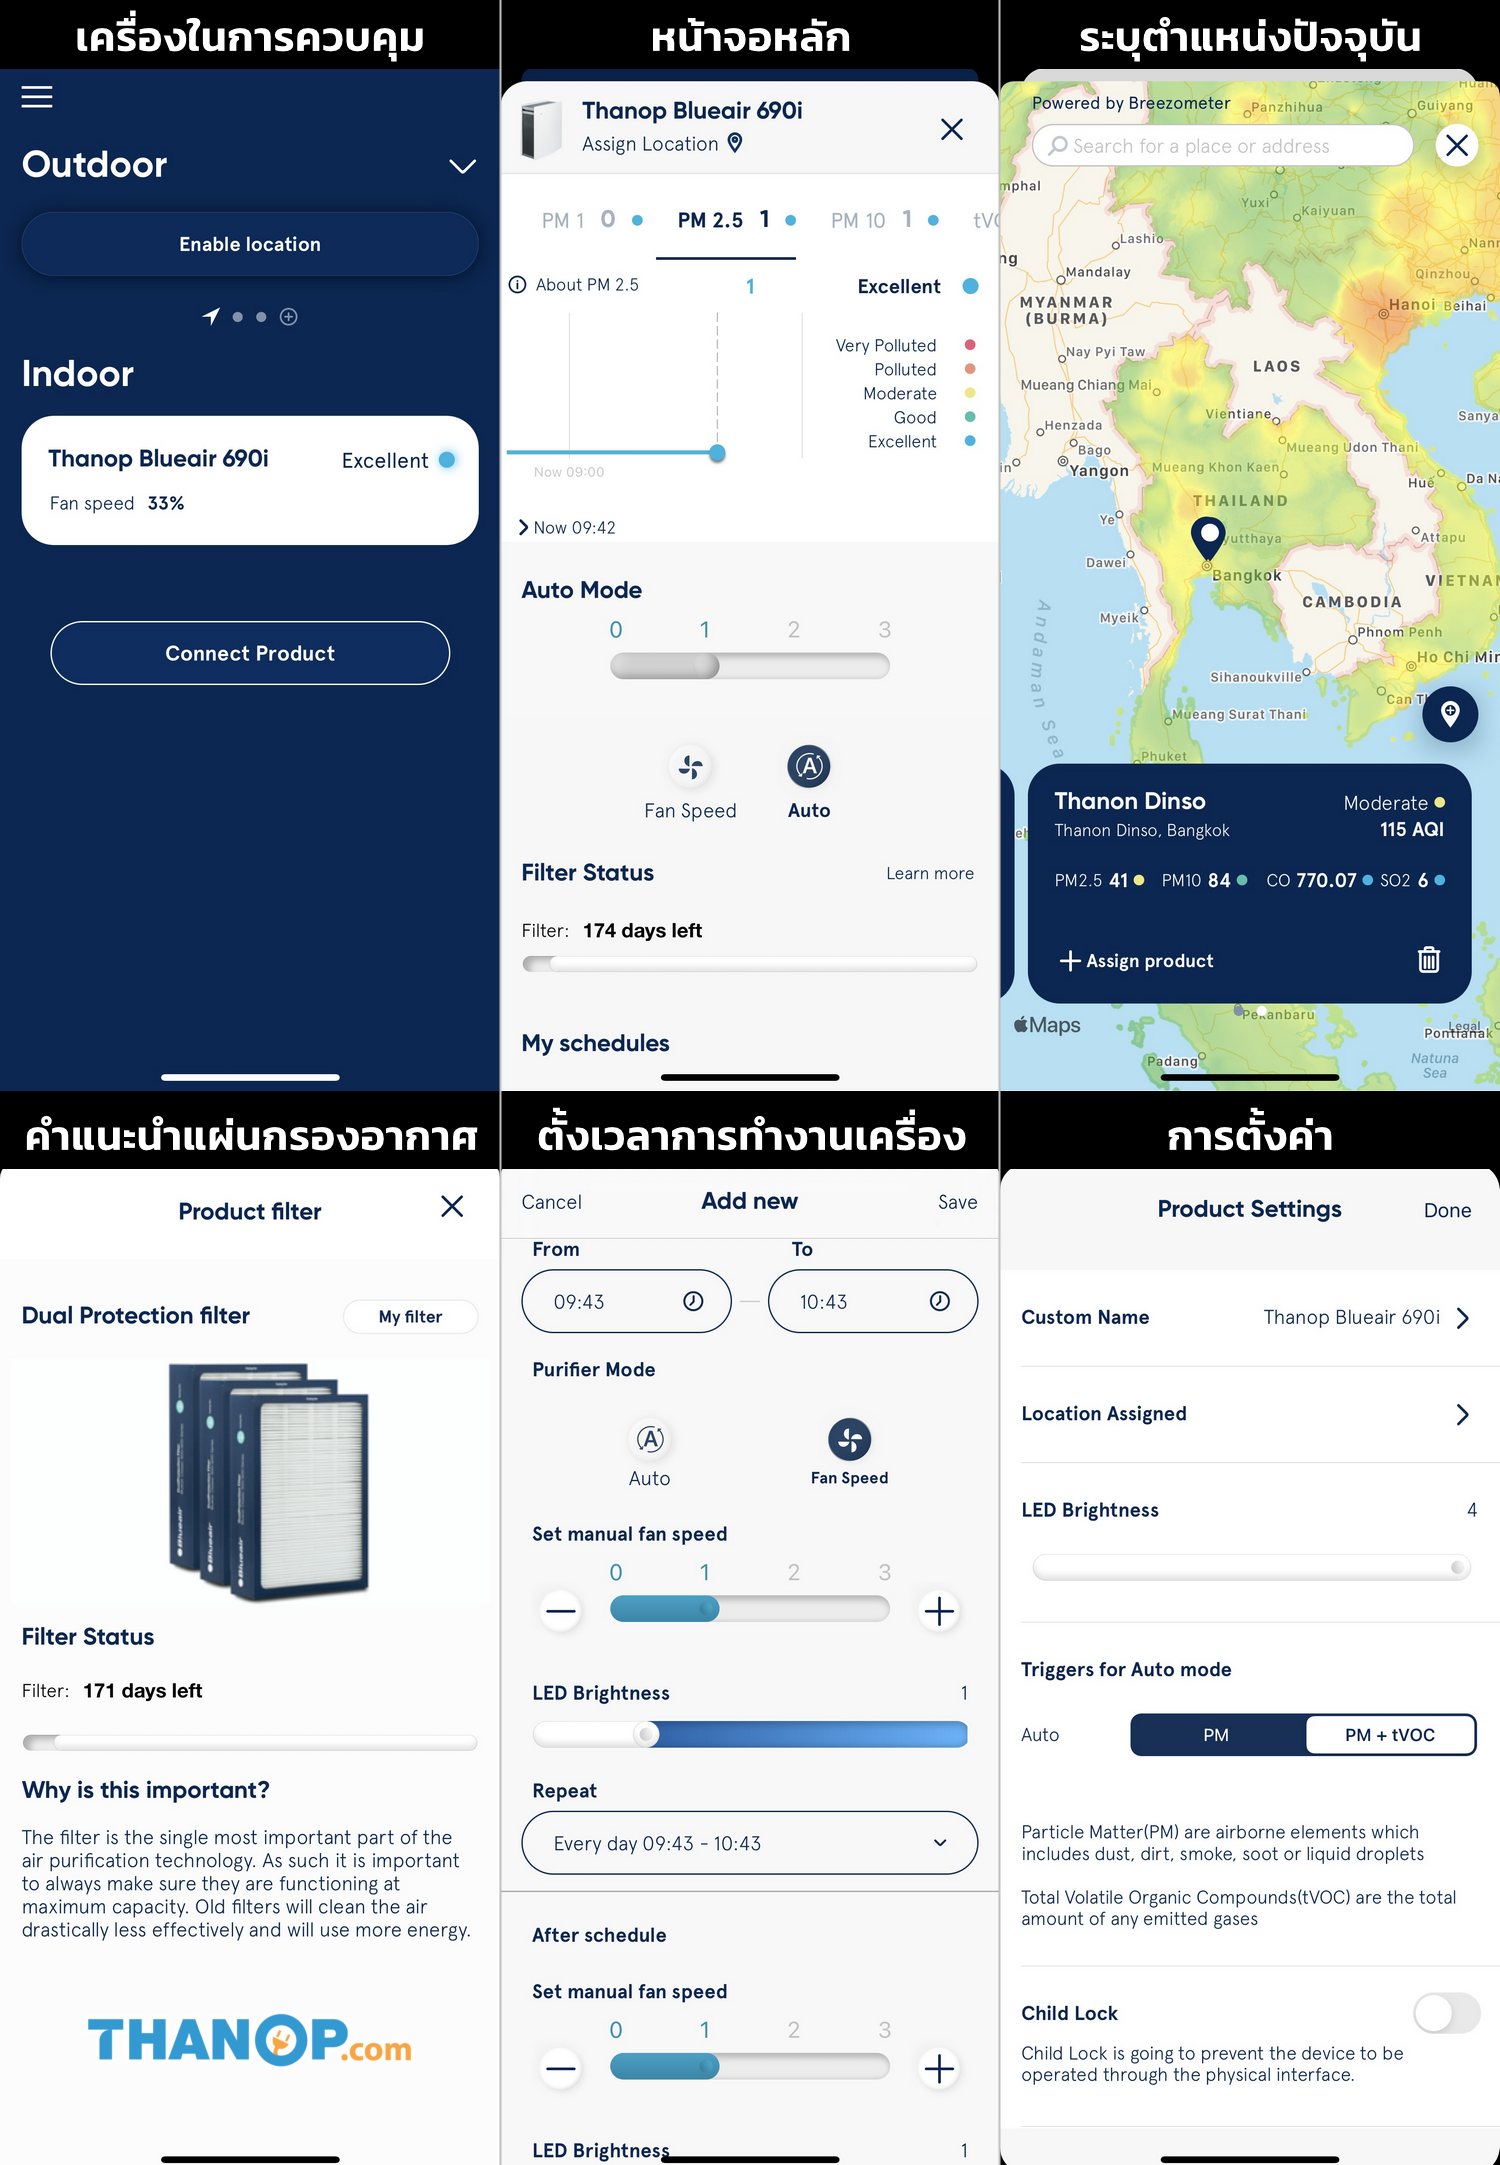 Blueair App Interface General Example